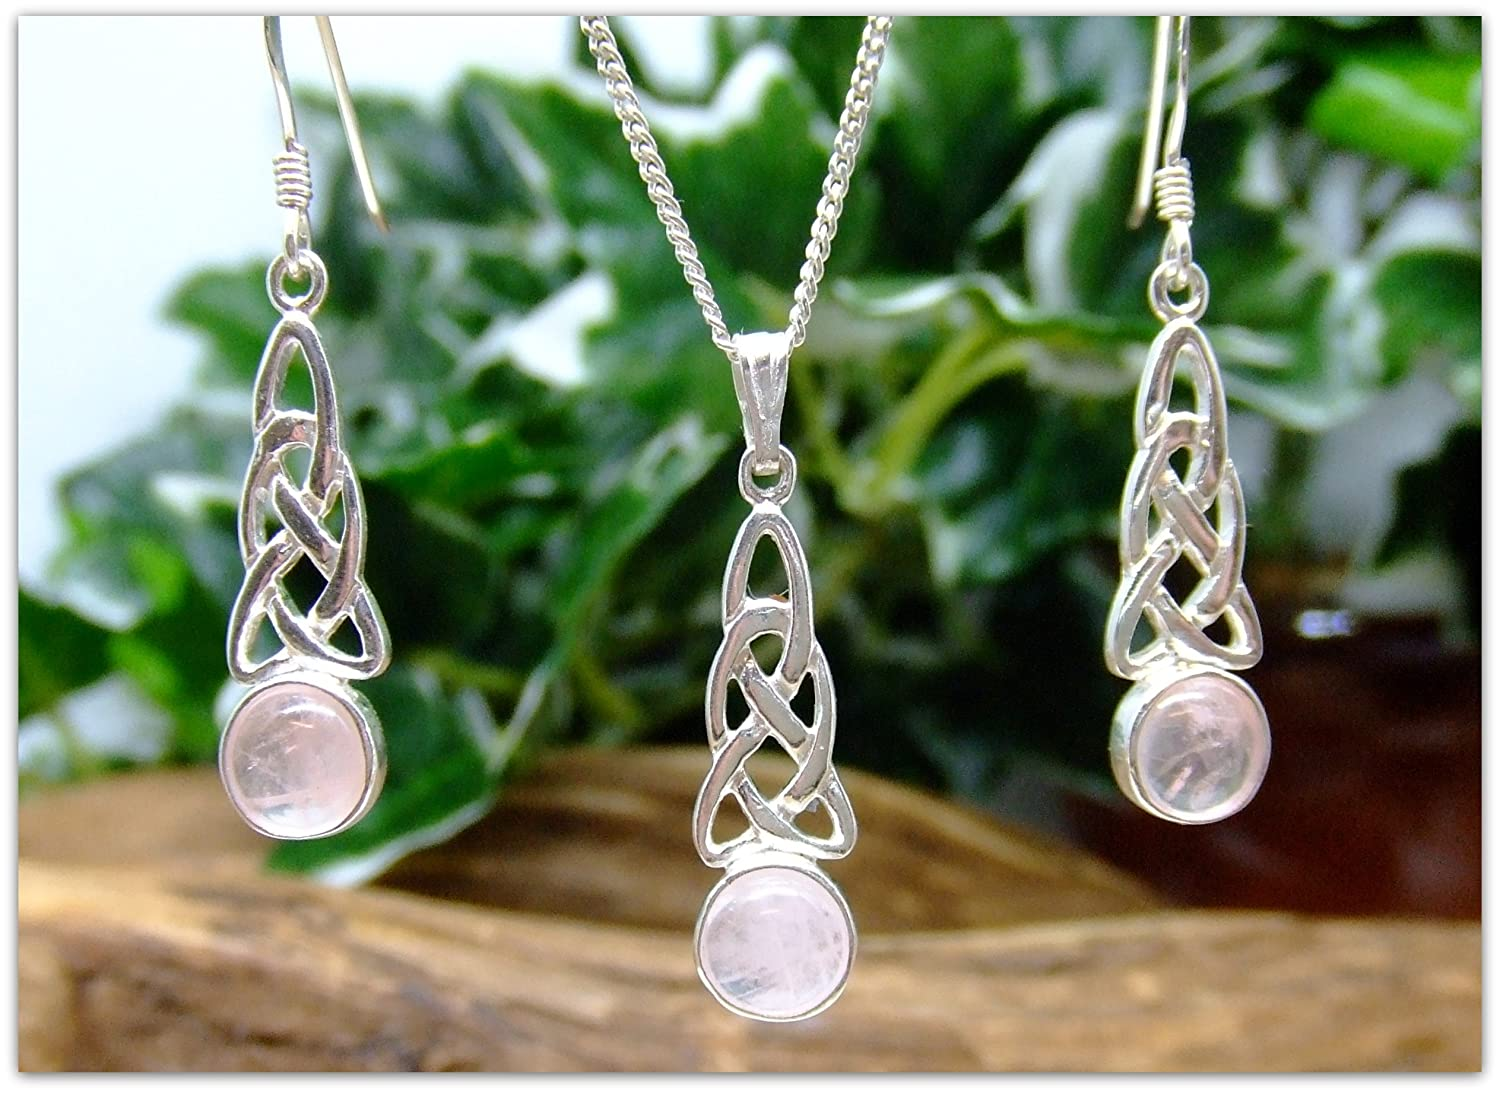 Celtic Rose Quartz Sterling Silver Necklace and Earring Set Gemstone 18 silver chain birthday gift for her mother gift bridesmaid Christmas